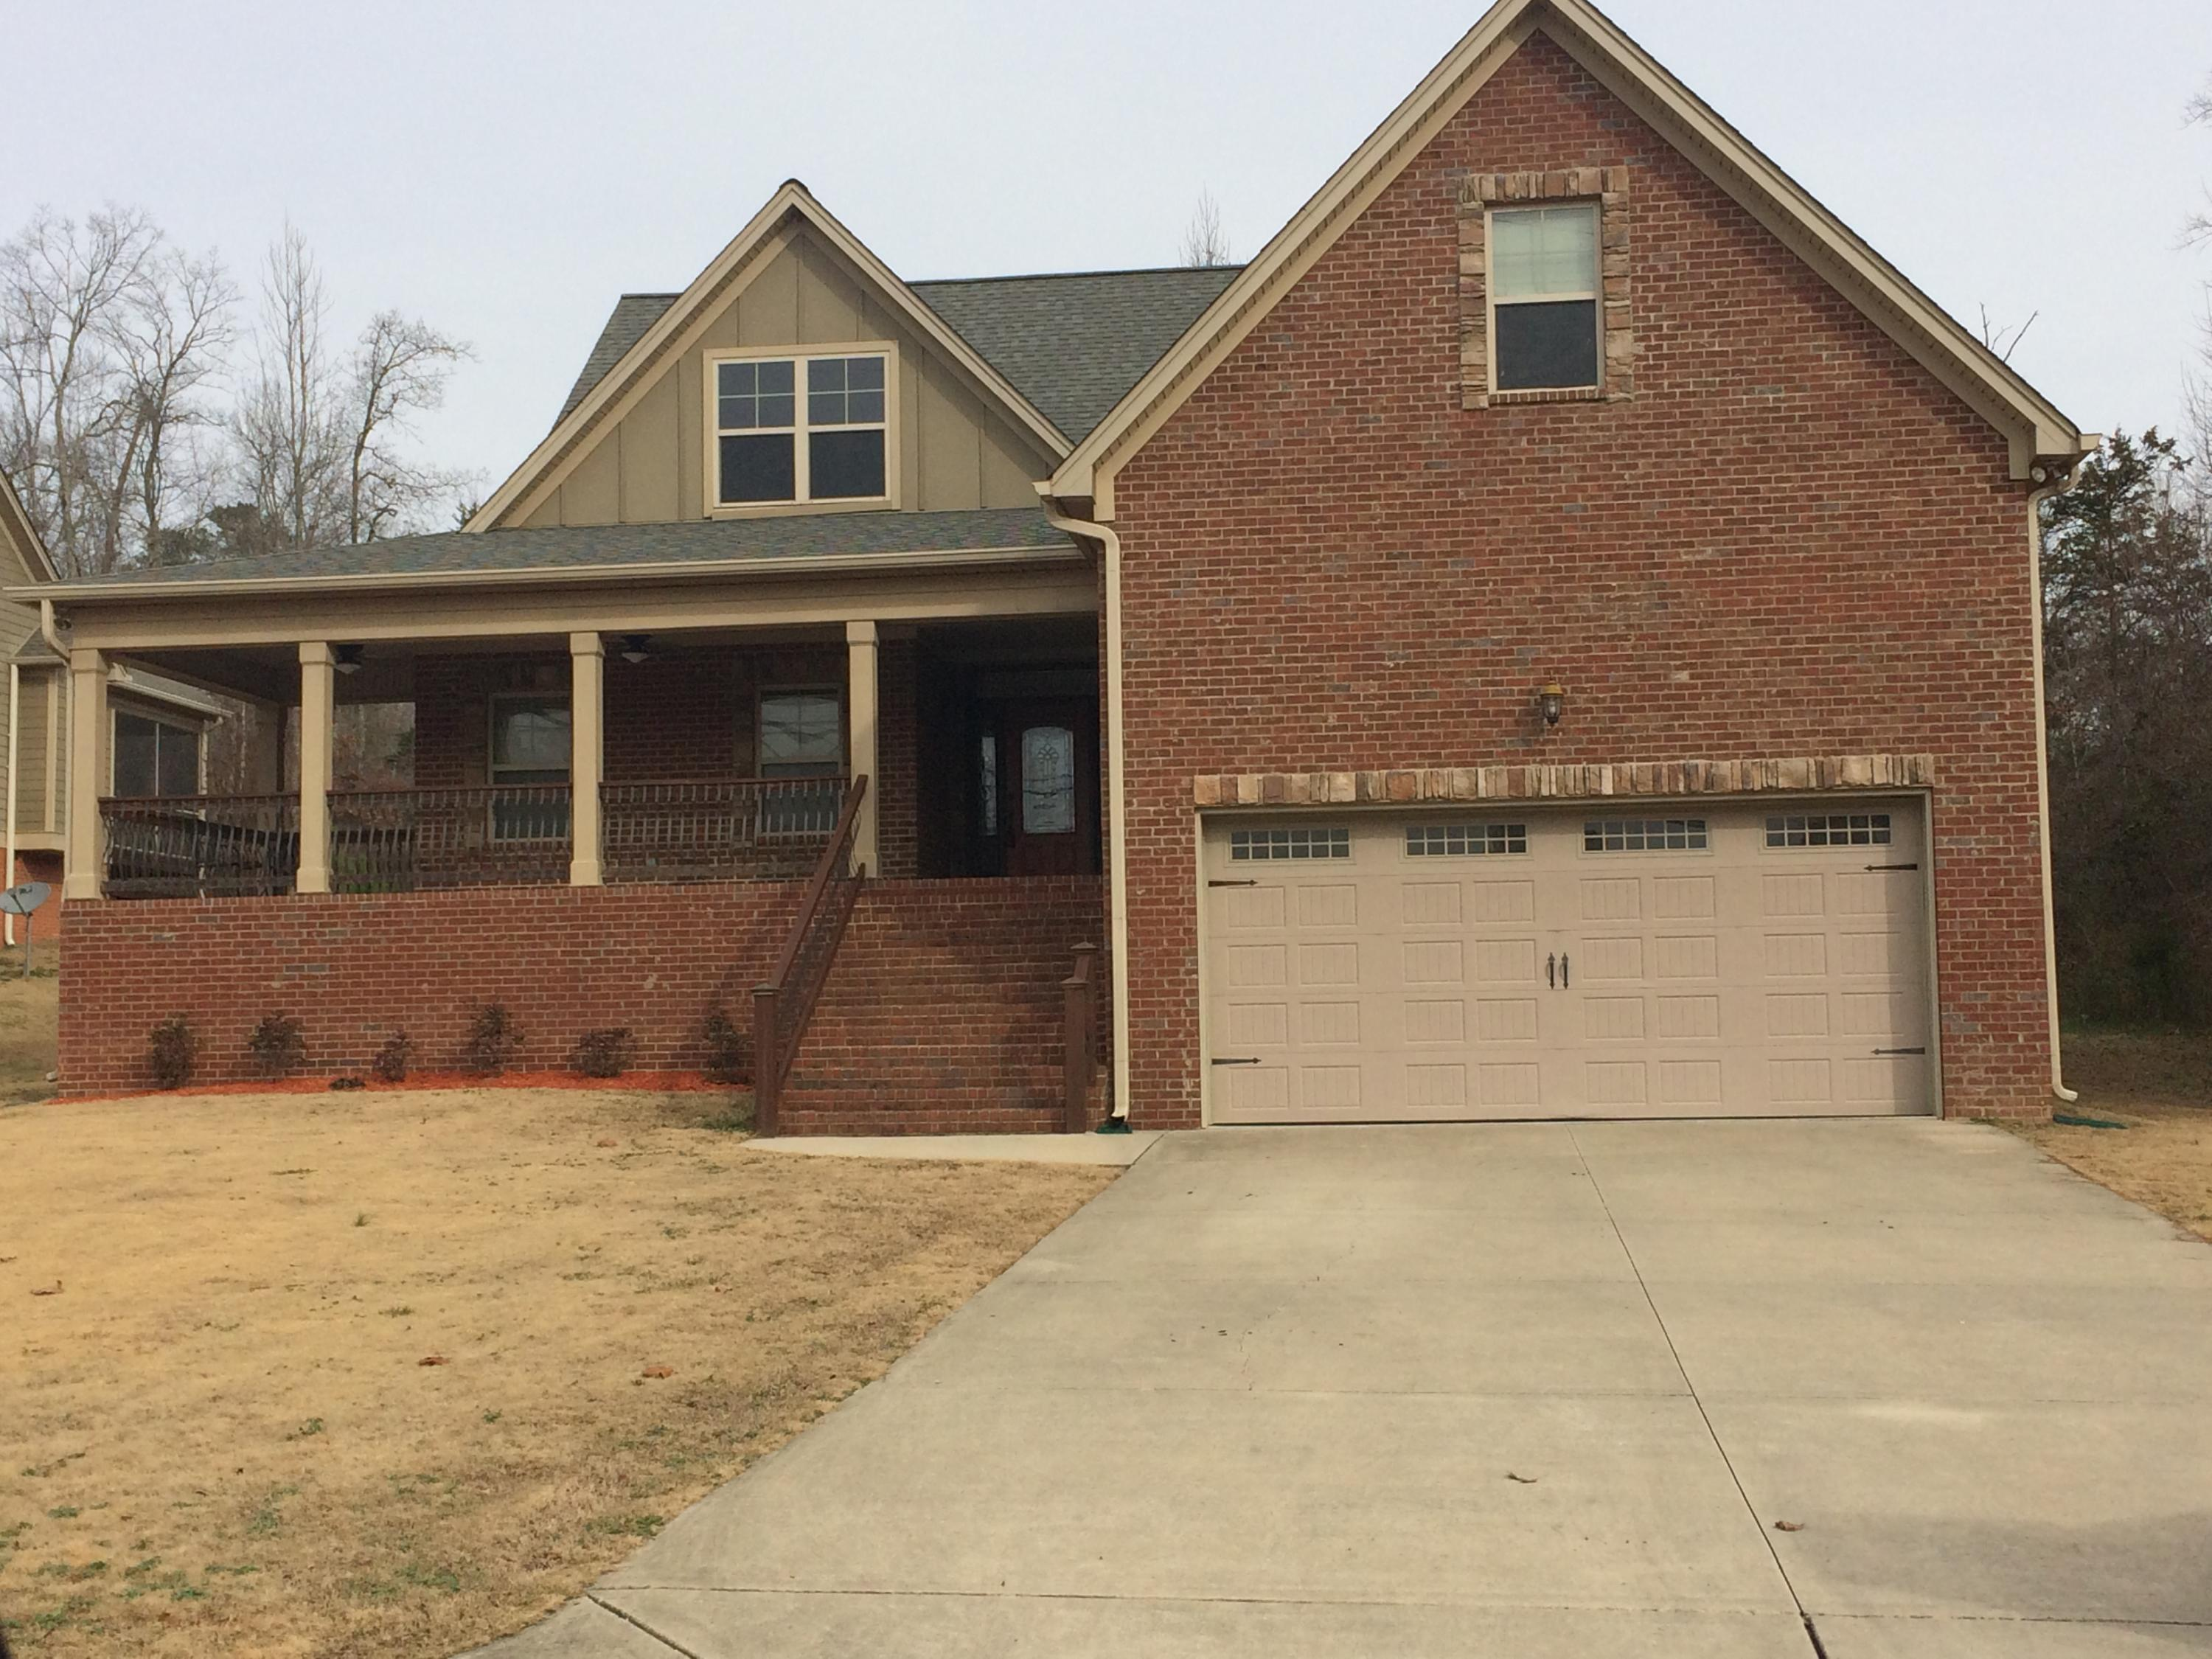 7415 Island Manor Dr, Harrison, TN 37341